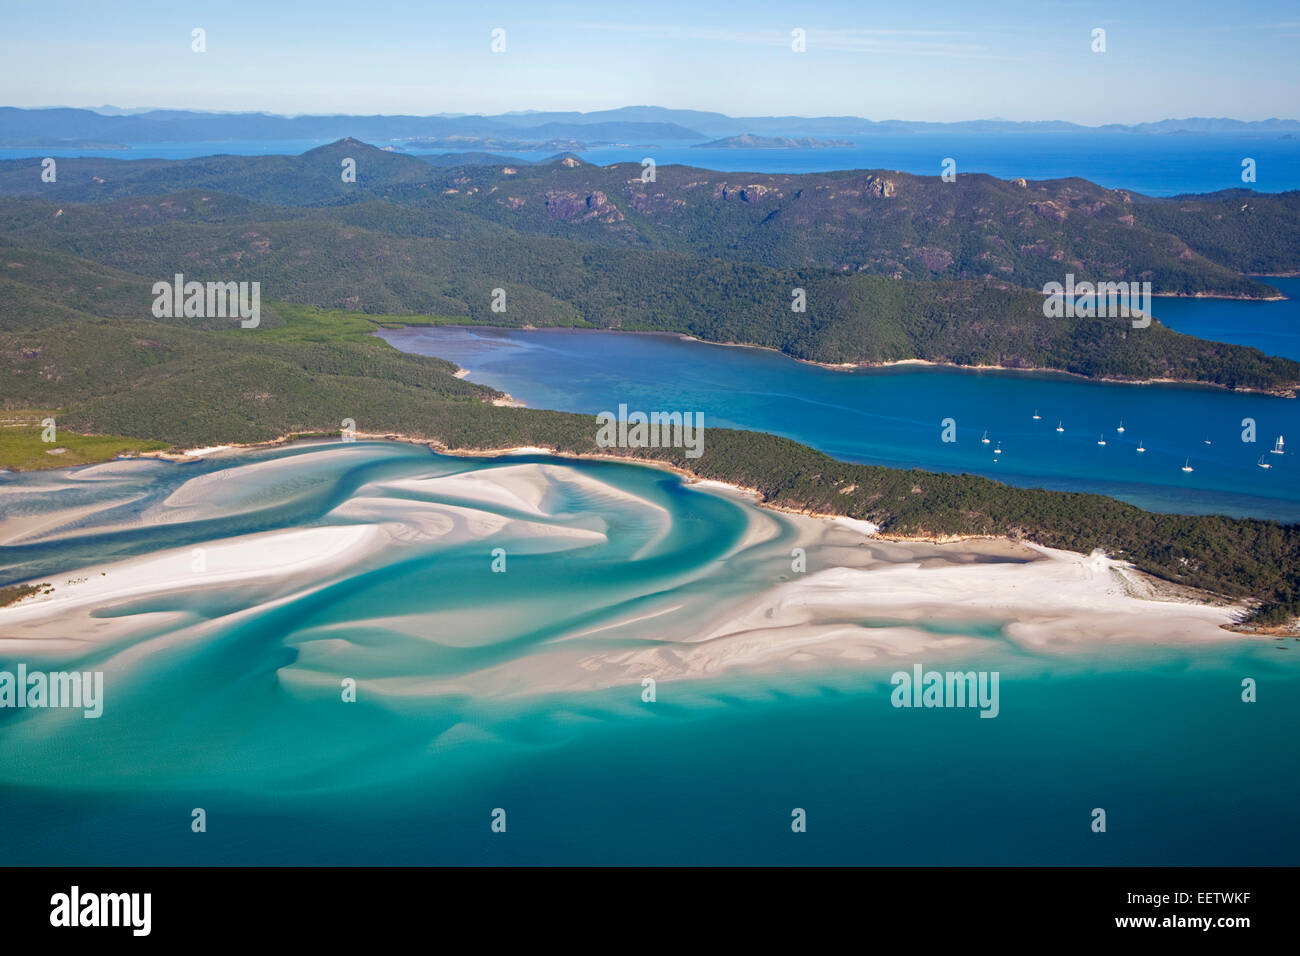 White sandy beaches and turquoise blue water of Whitehaven Beach on Whitsunday Island in the Coral Sea, Queensland, - Stock Image